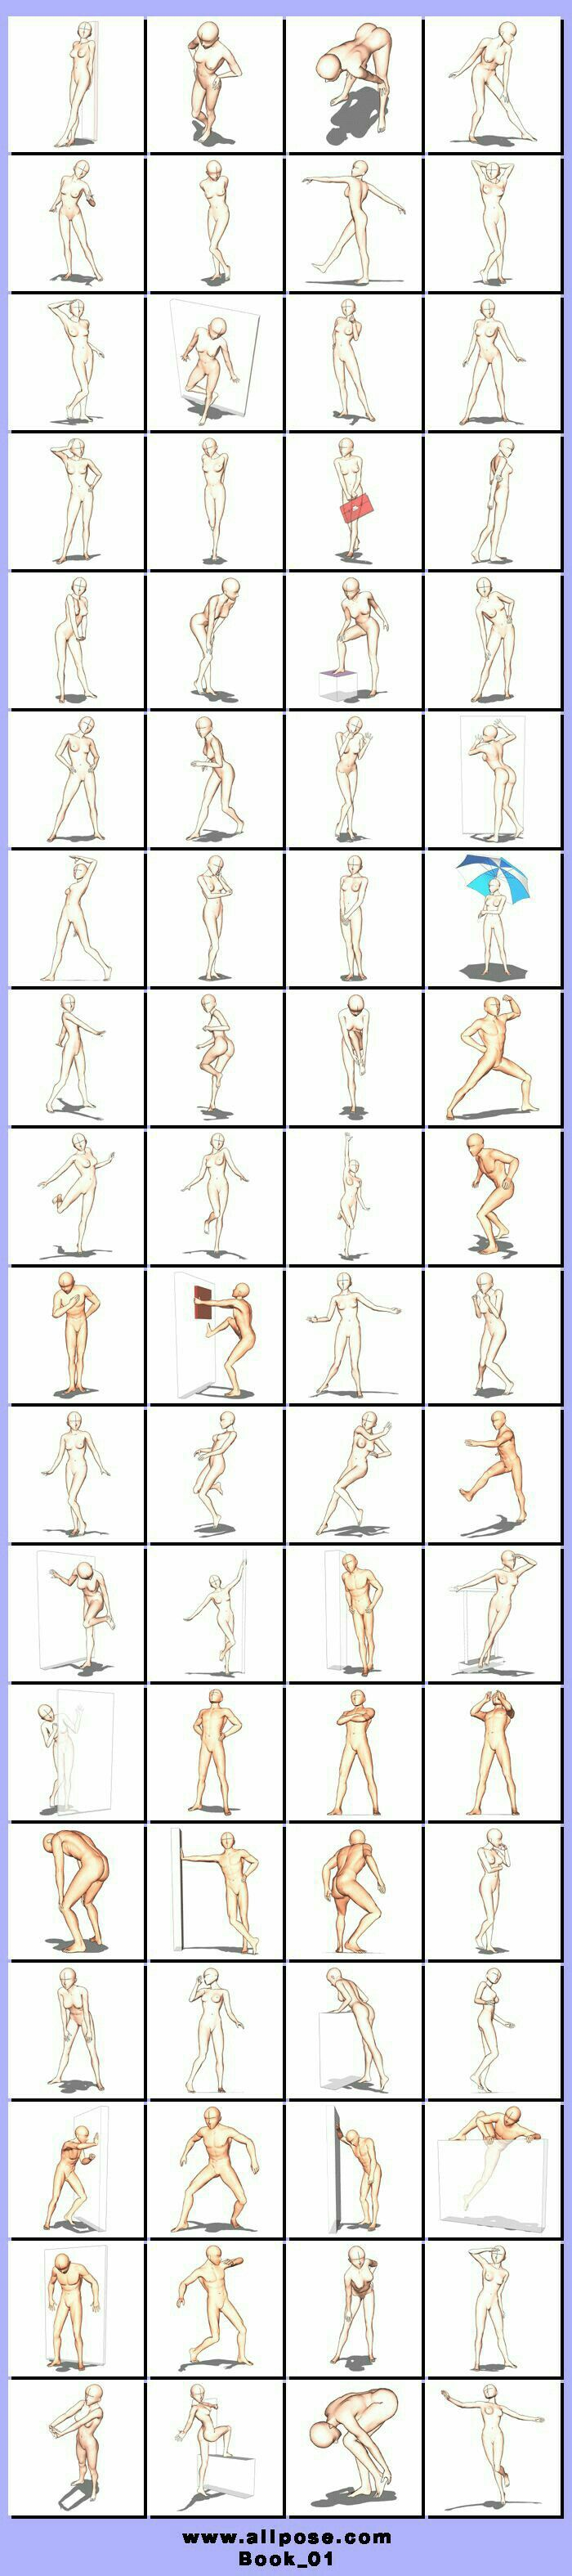 Body positions, text; How to Draw Manga/Anime